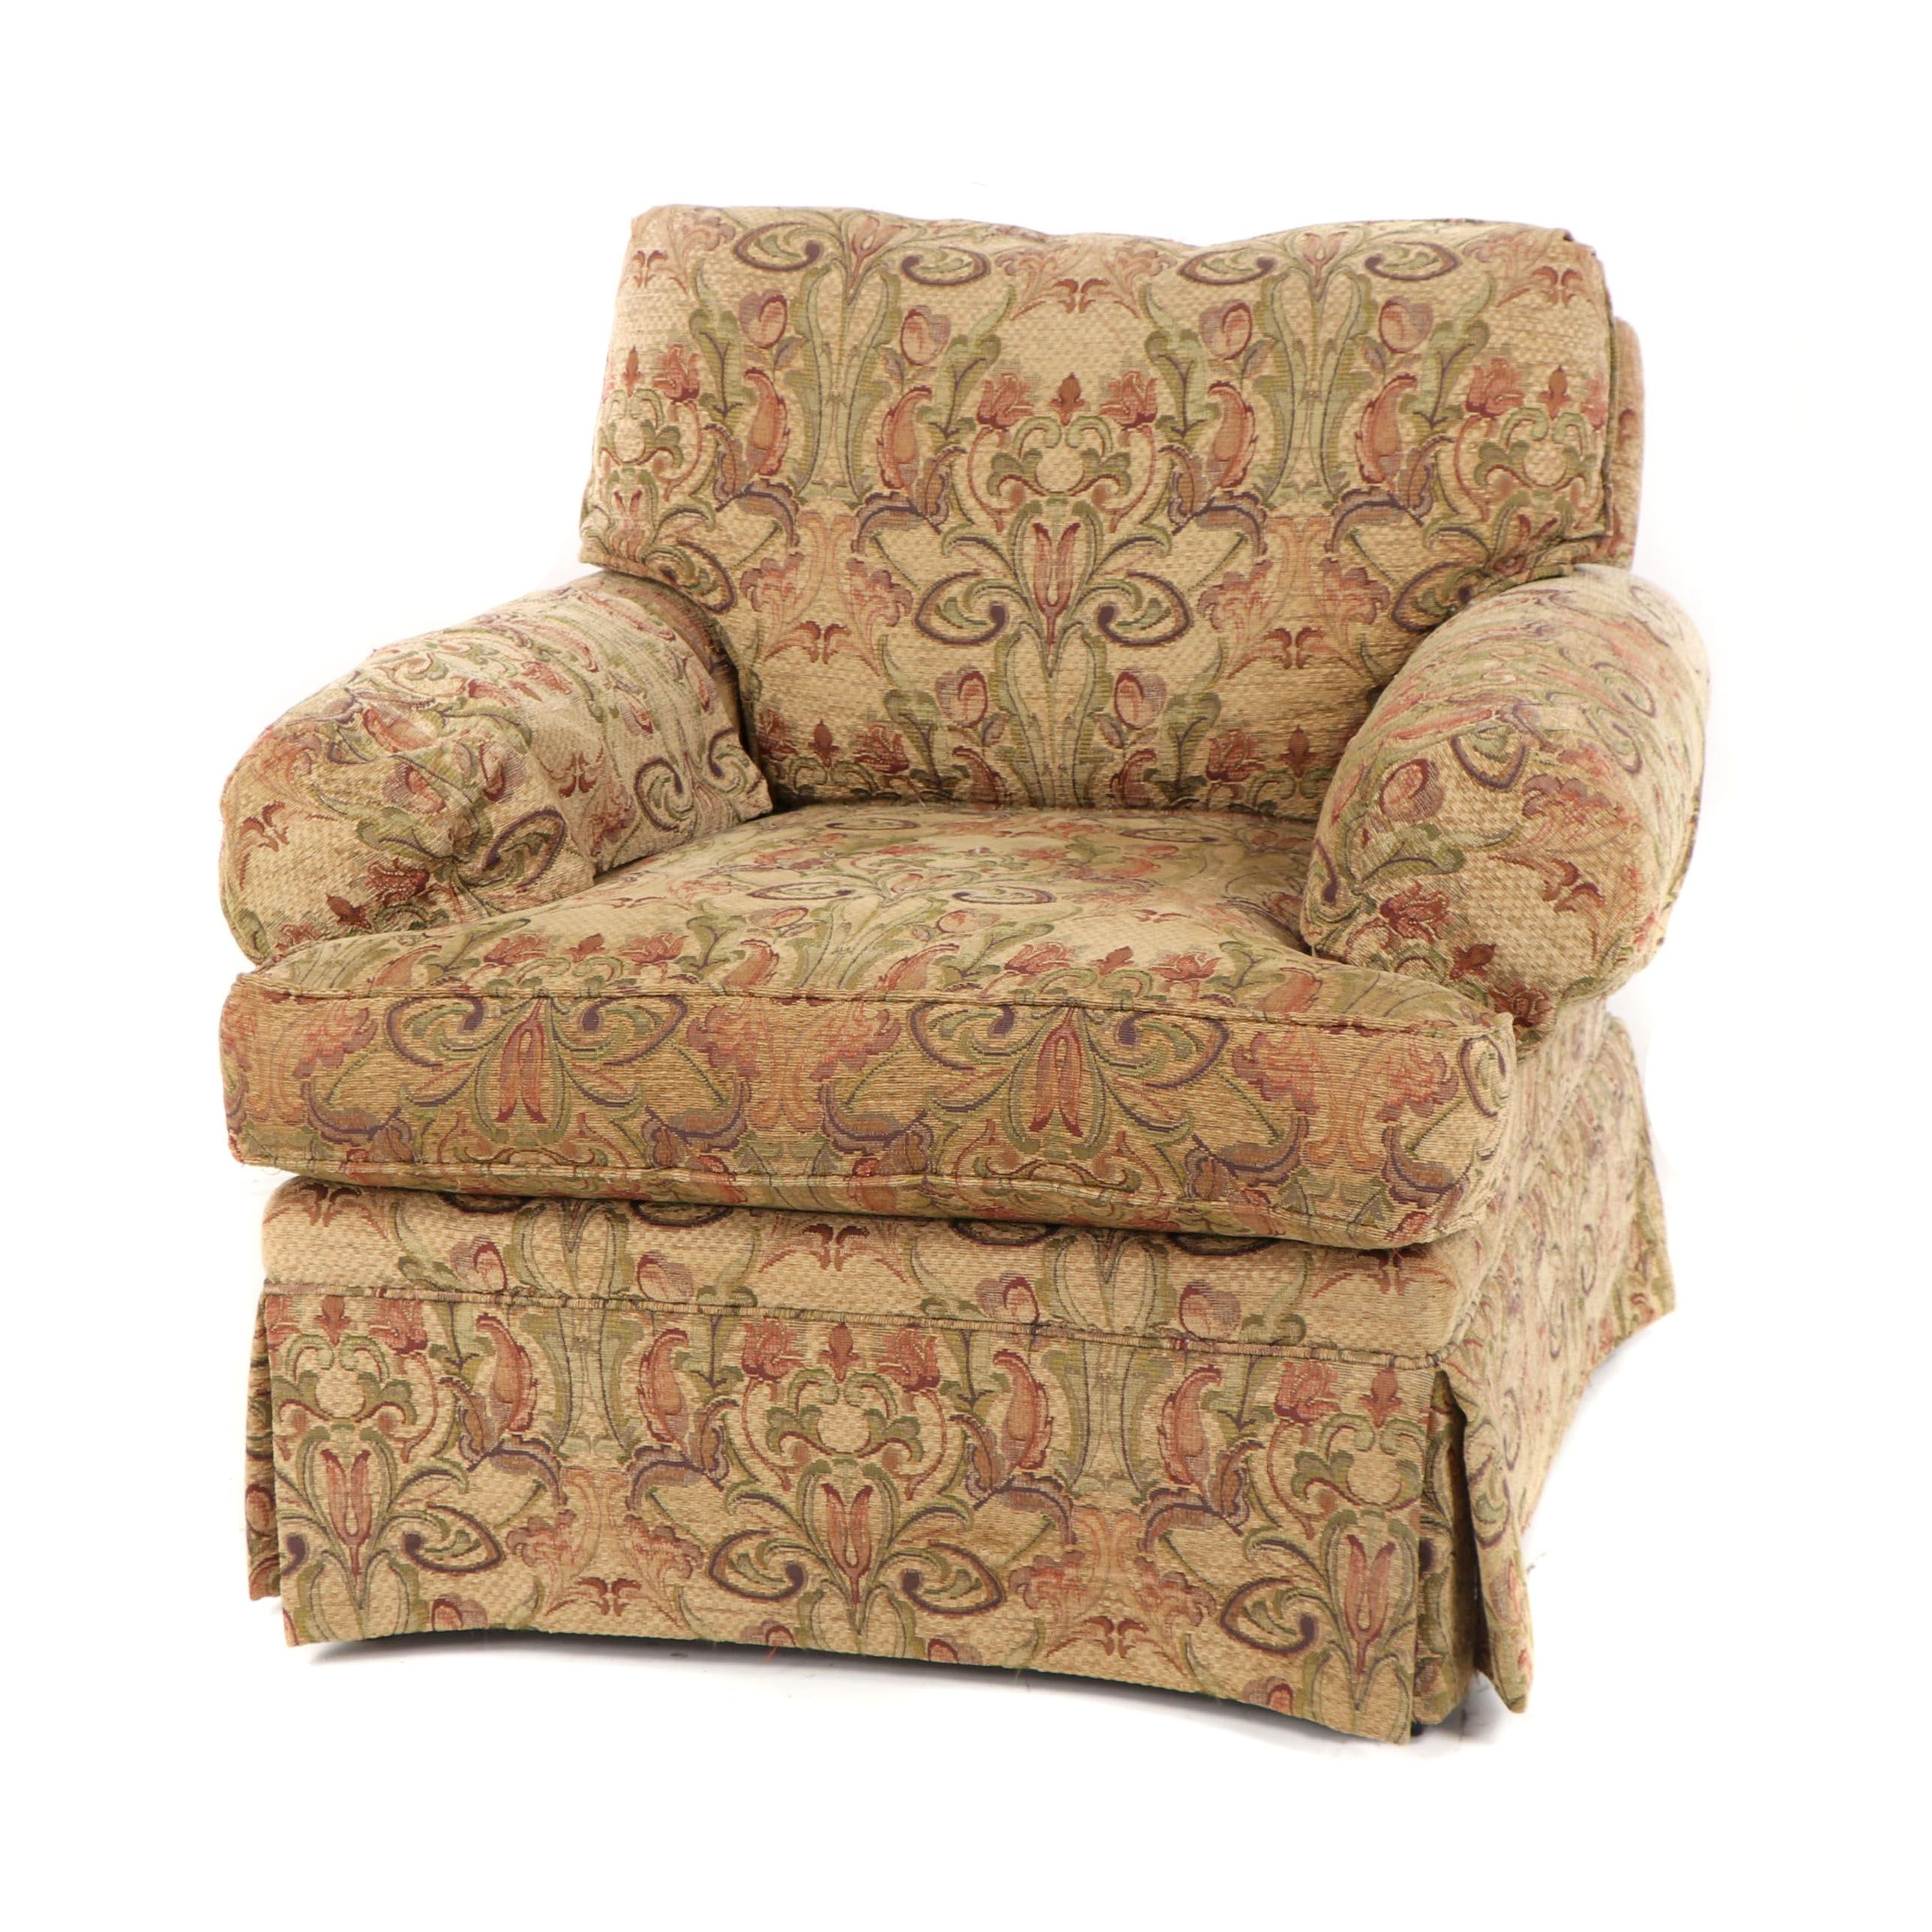 Floral Pattern Upholstered Armchair by Robb & Stucky, 21st Century